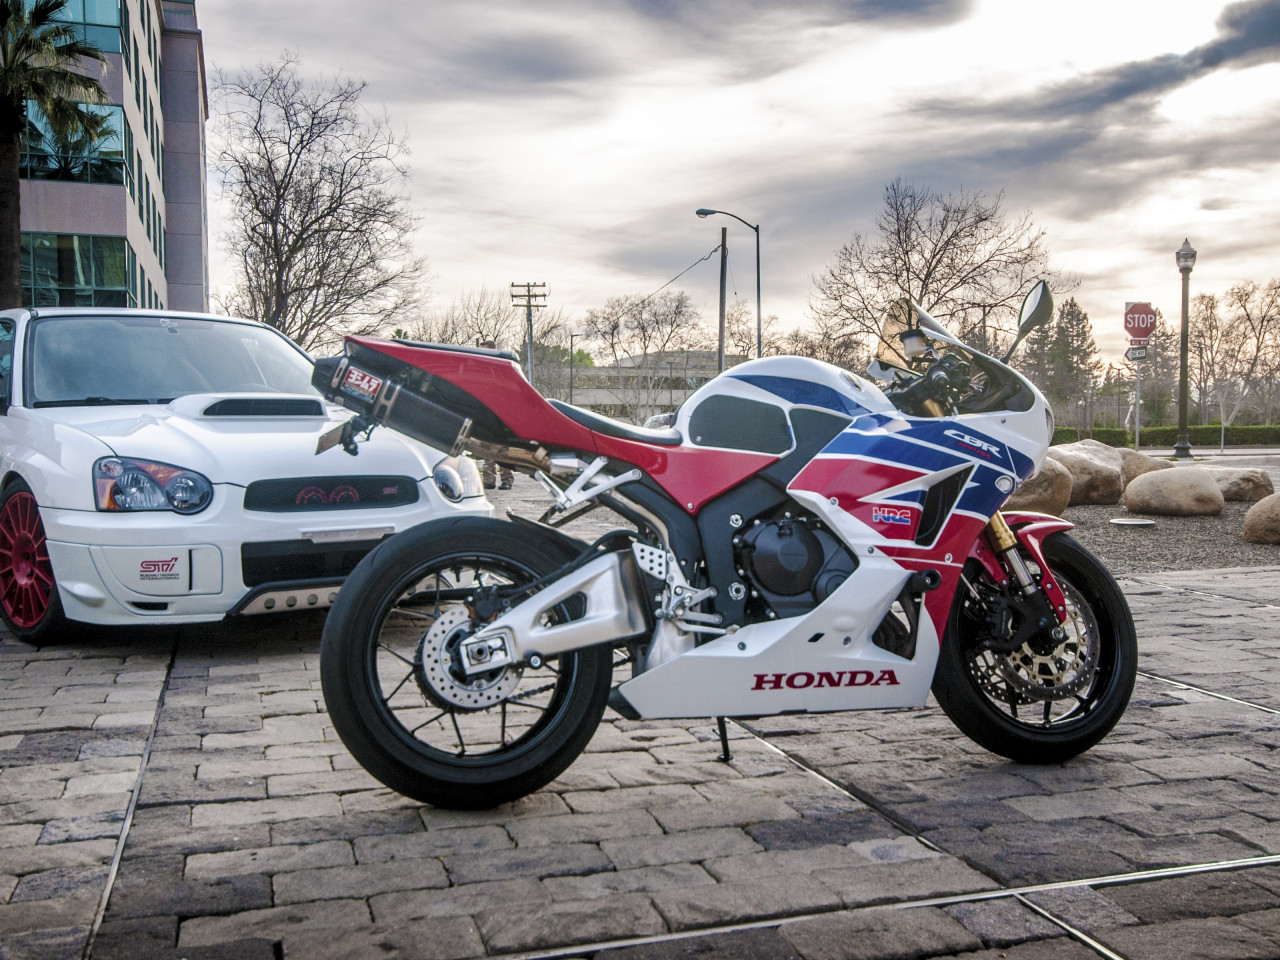 Honda CBR and Subaru WRX wallpaper 1280x960